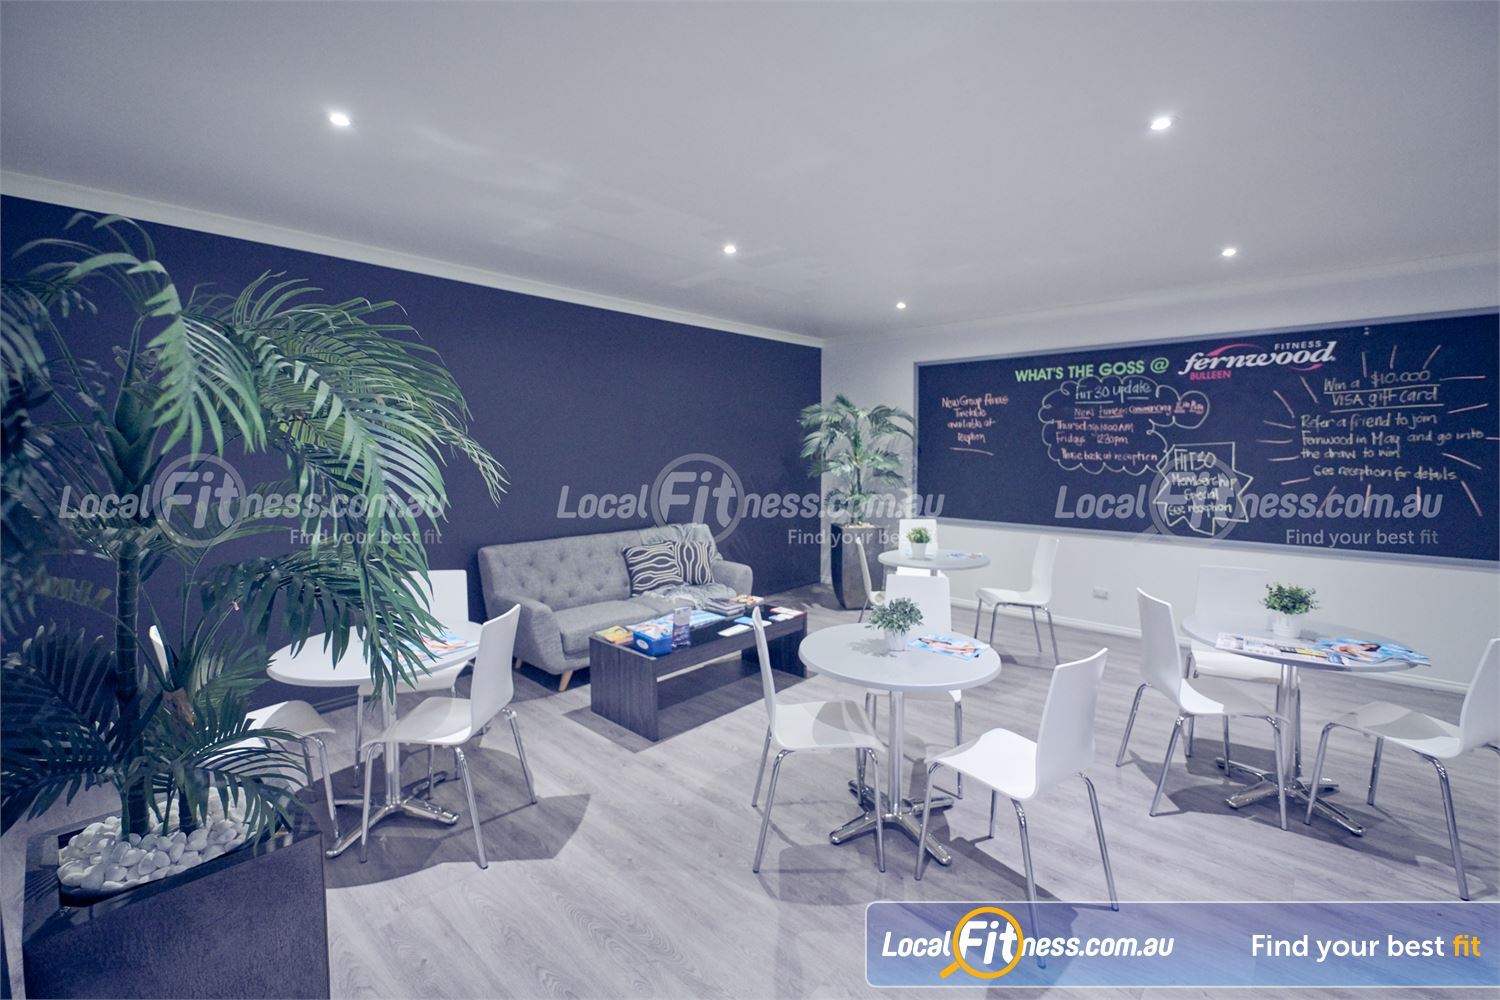 Fernwood Fitness Near Doncaster Women to have their own special space in our member's lounge.